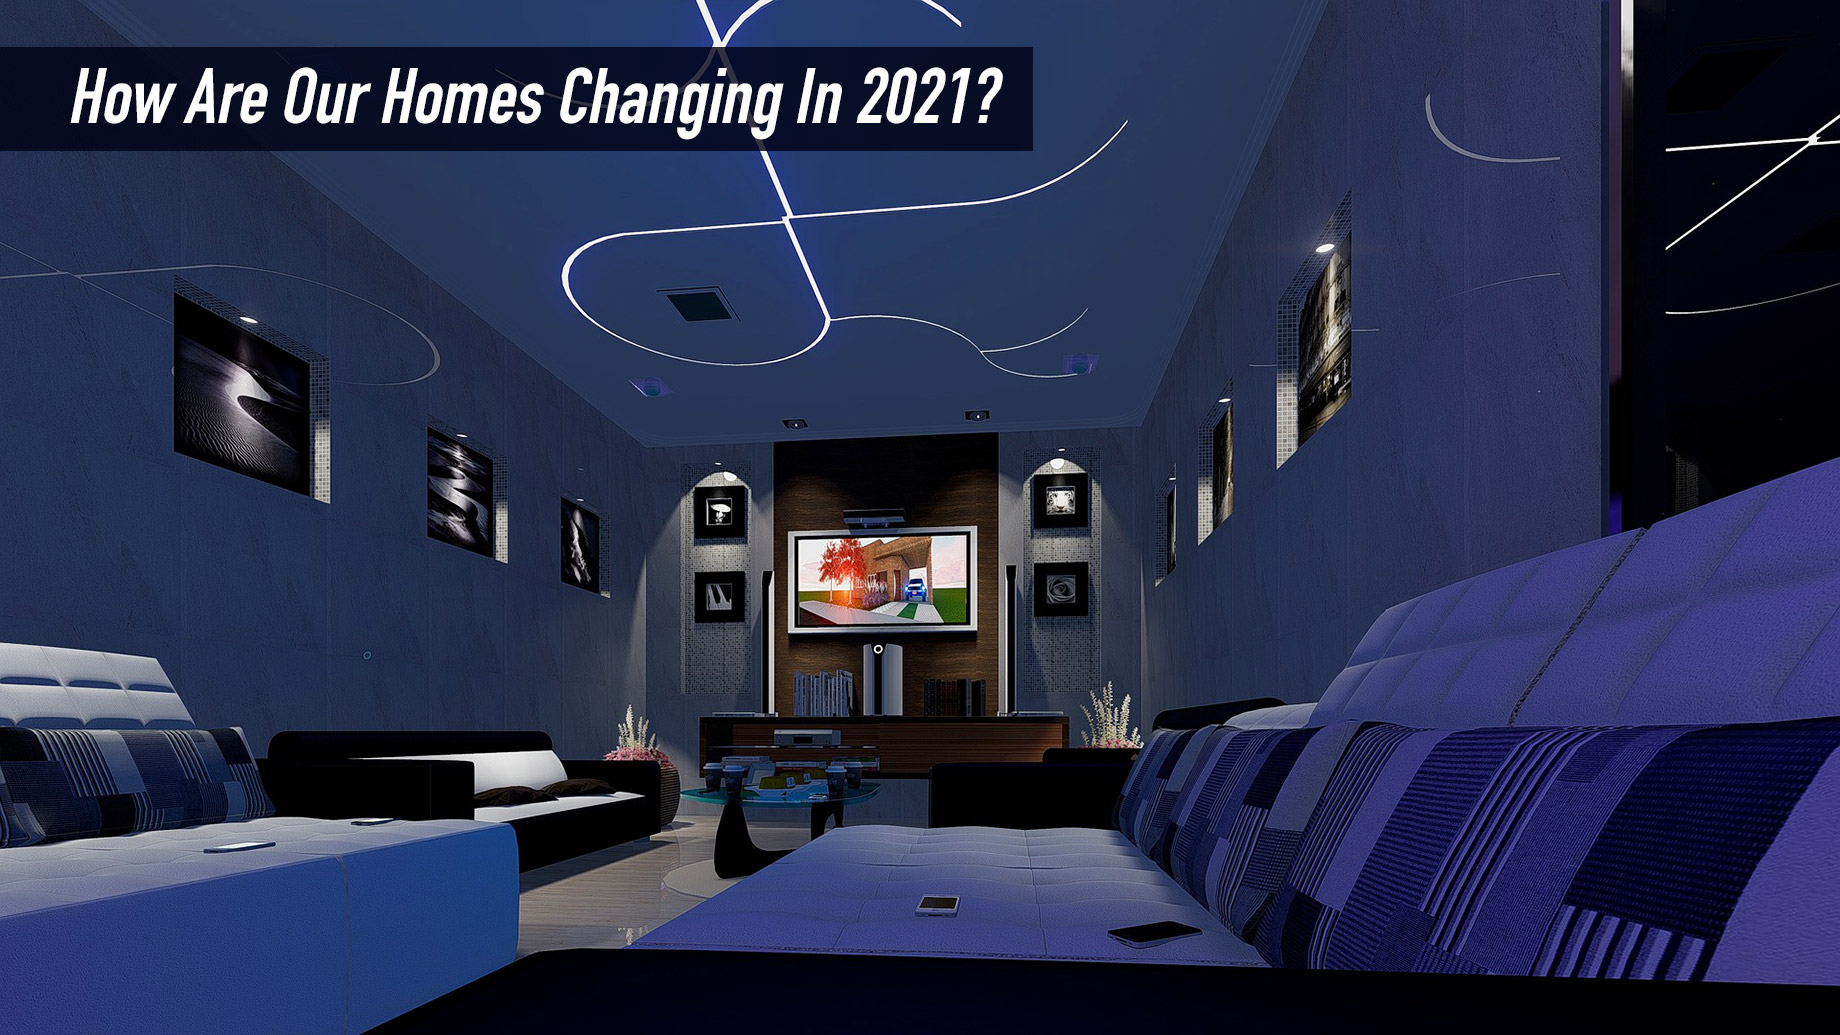 How Are Our Homes Changing In 2021?